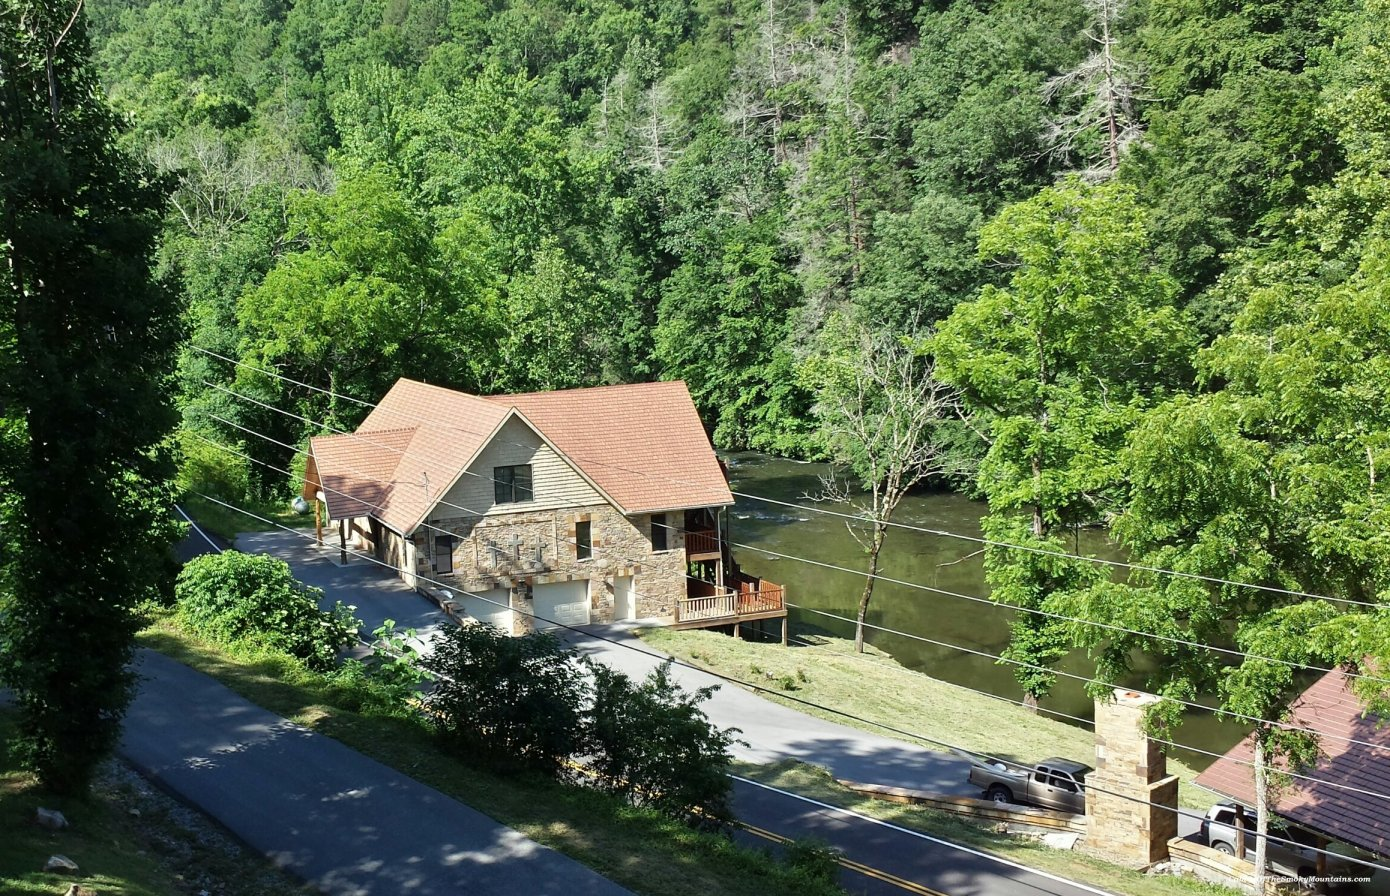 Riverside Lodge Luxury 5 Bedroom Cabin On The River